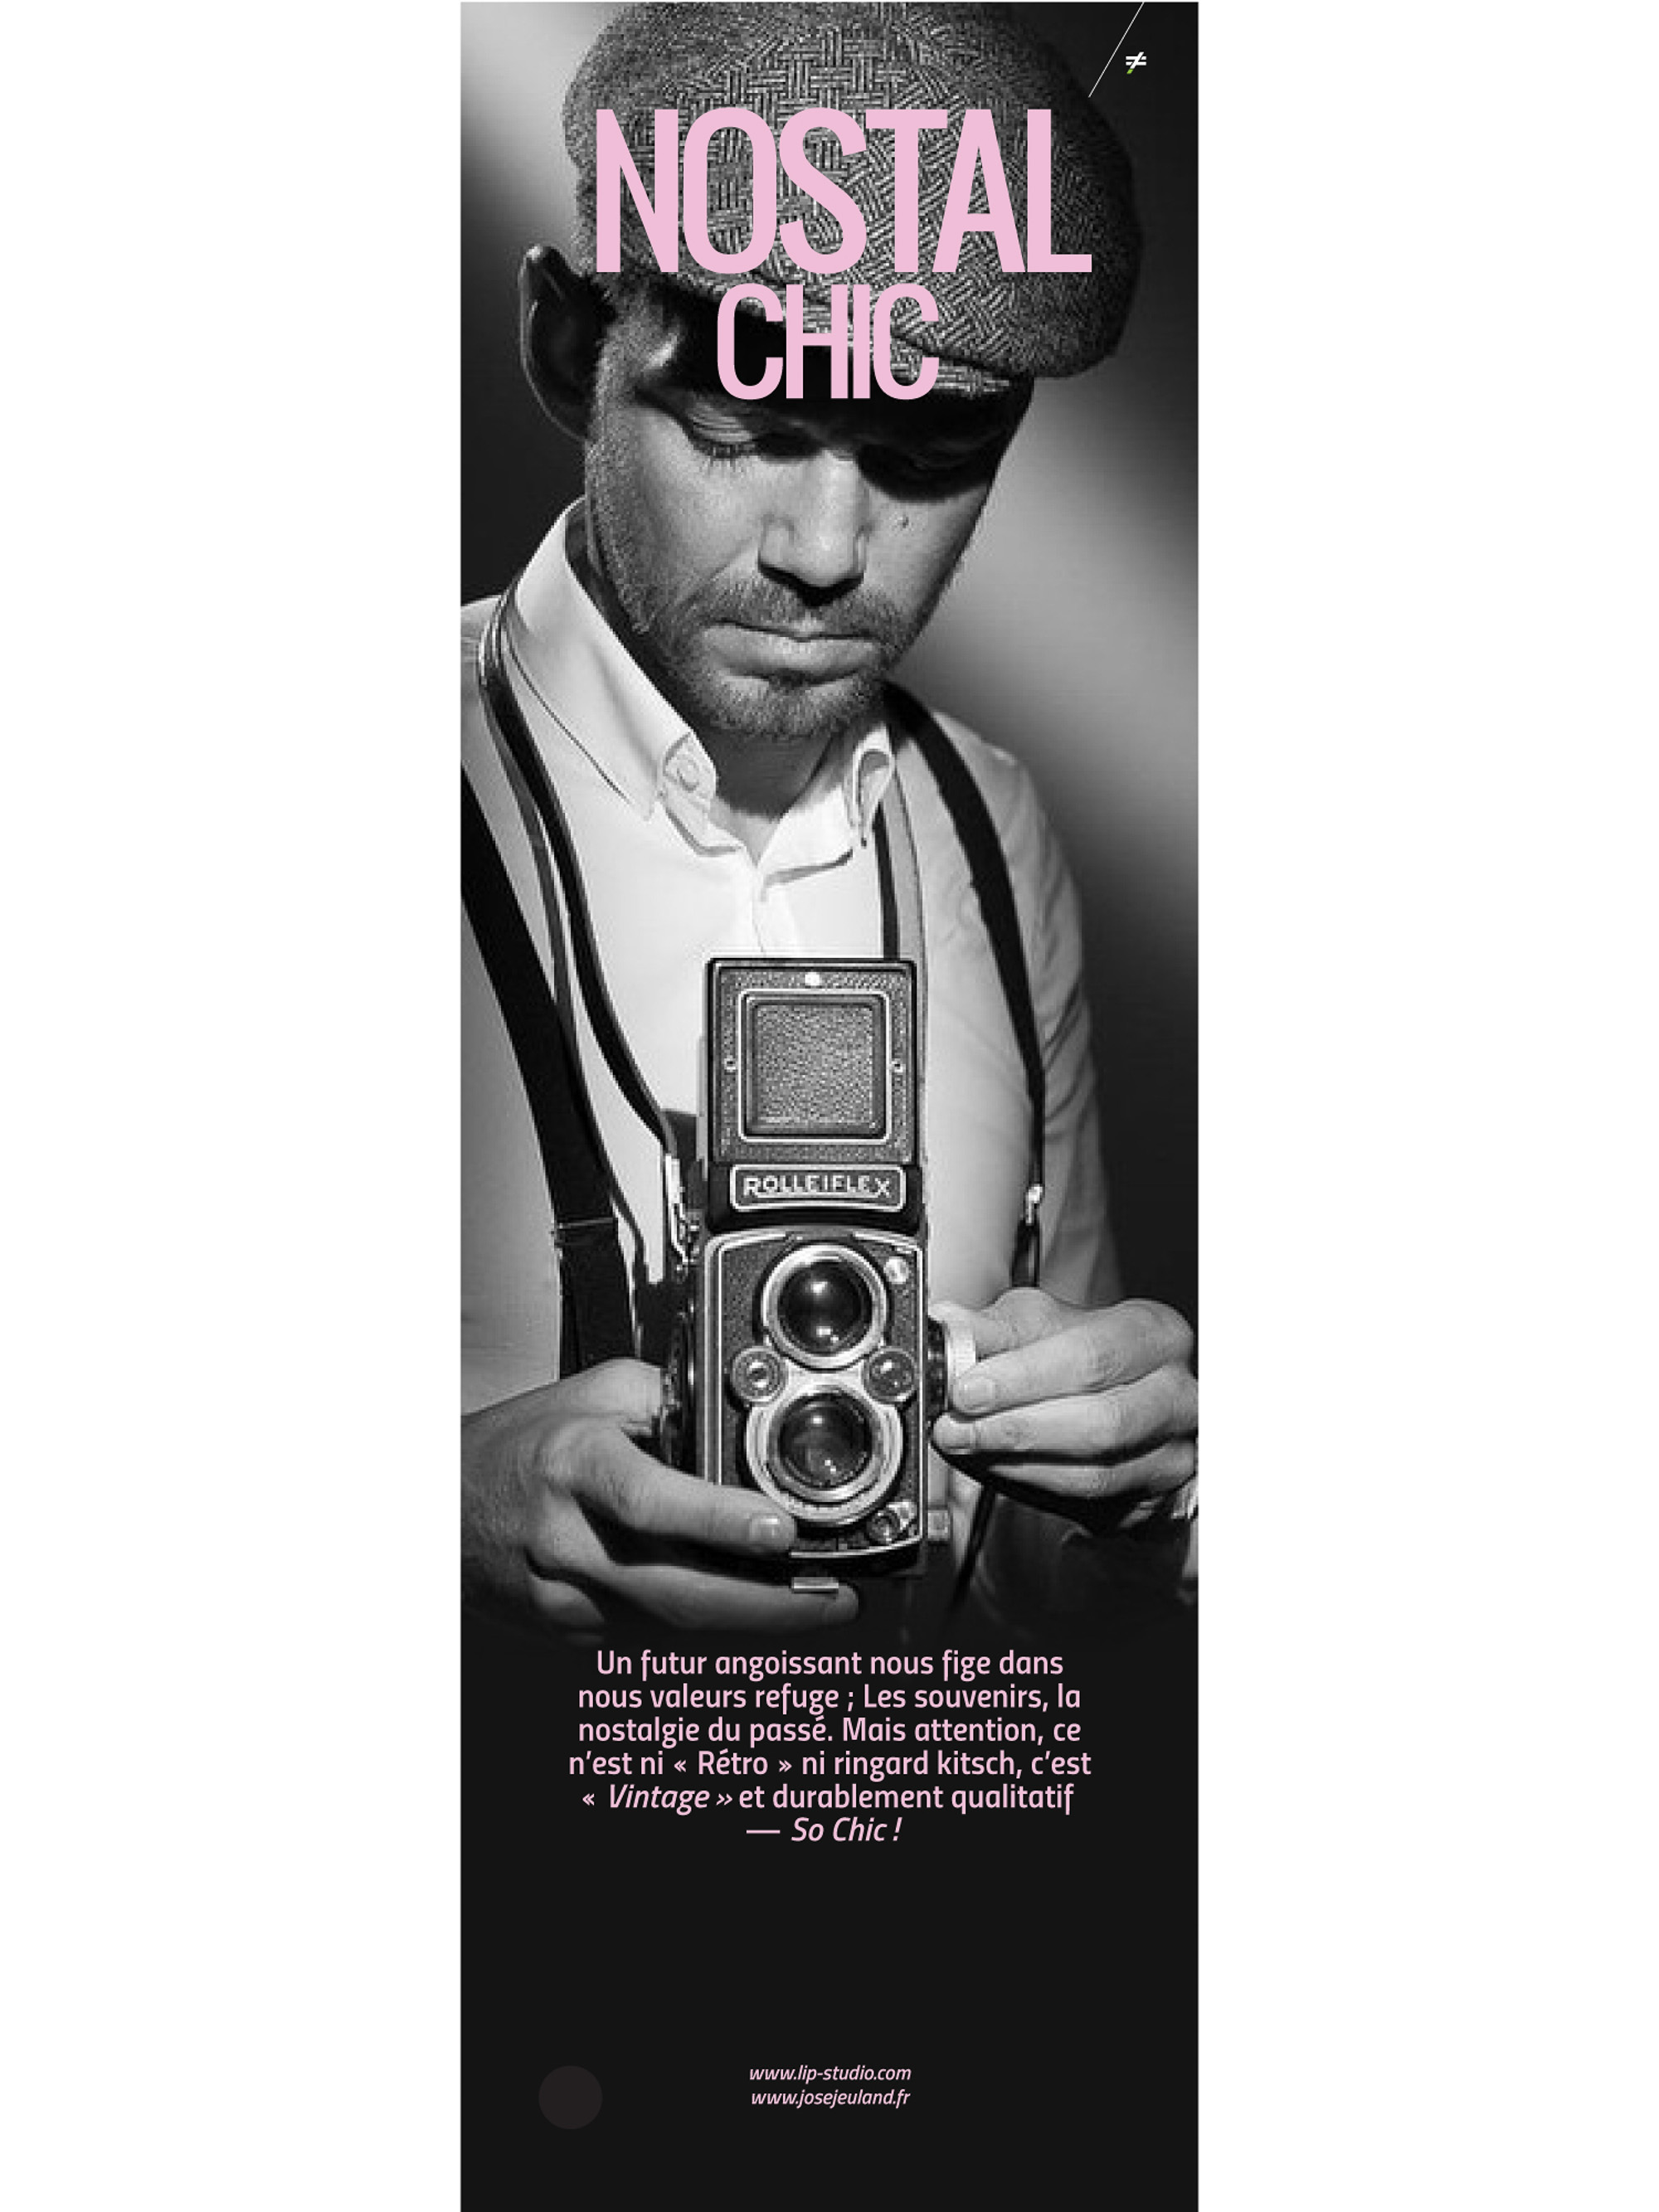 Nostalgic chic autrement jose jeuland film camera